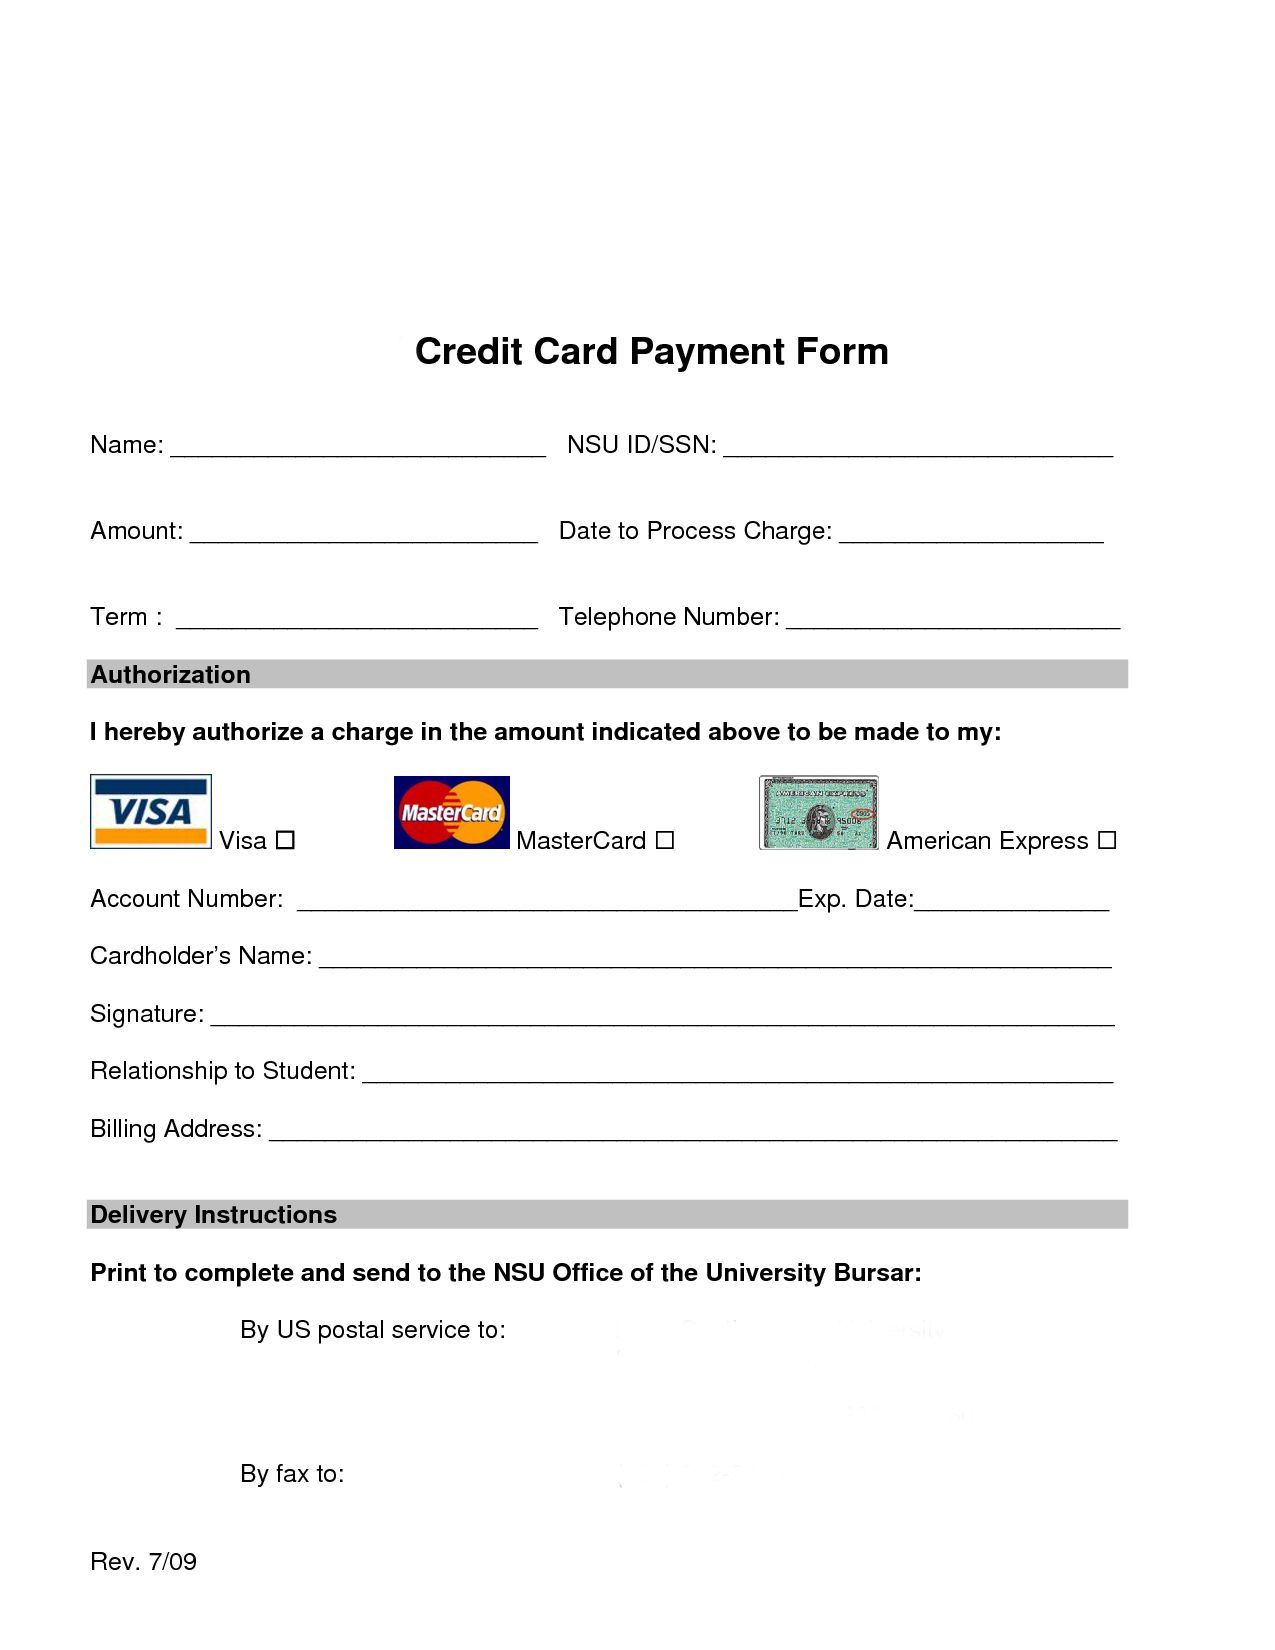 Credit Card Processing Form In 2020 Free Credit Card Credit